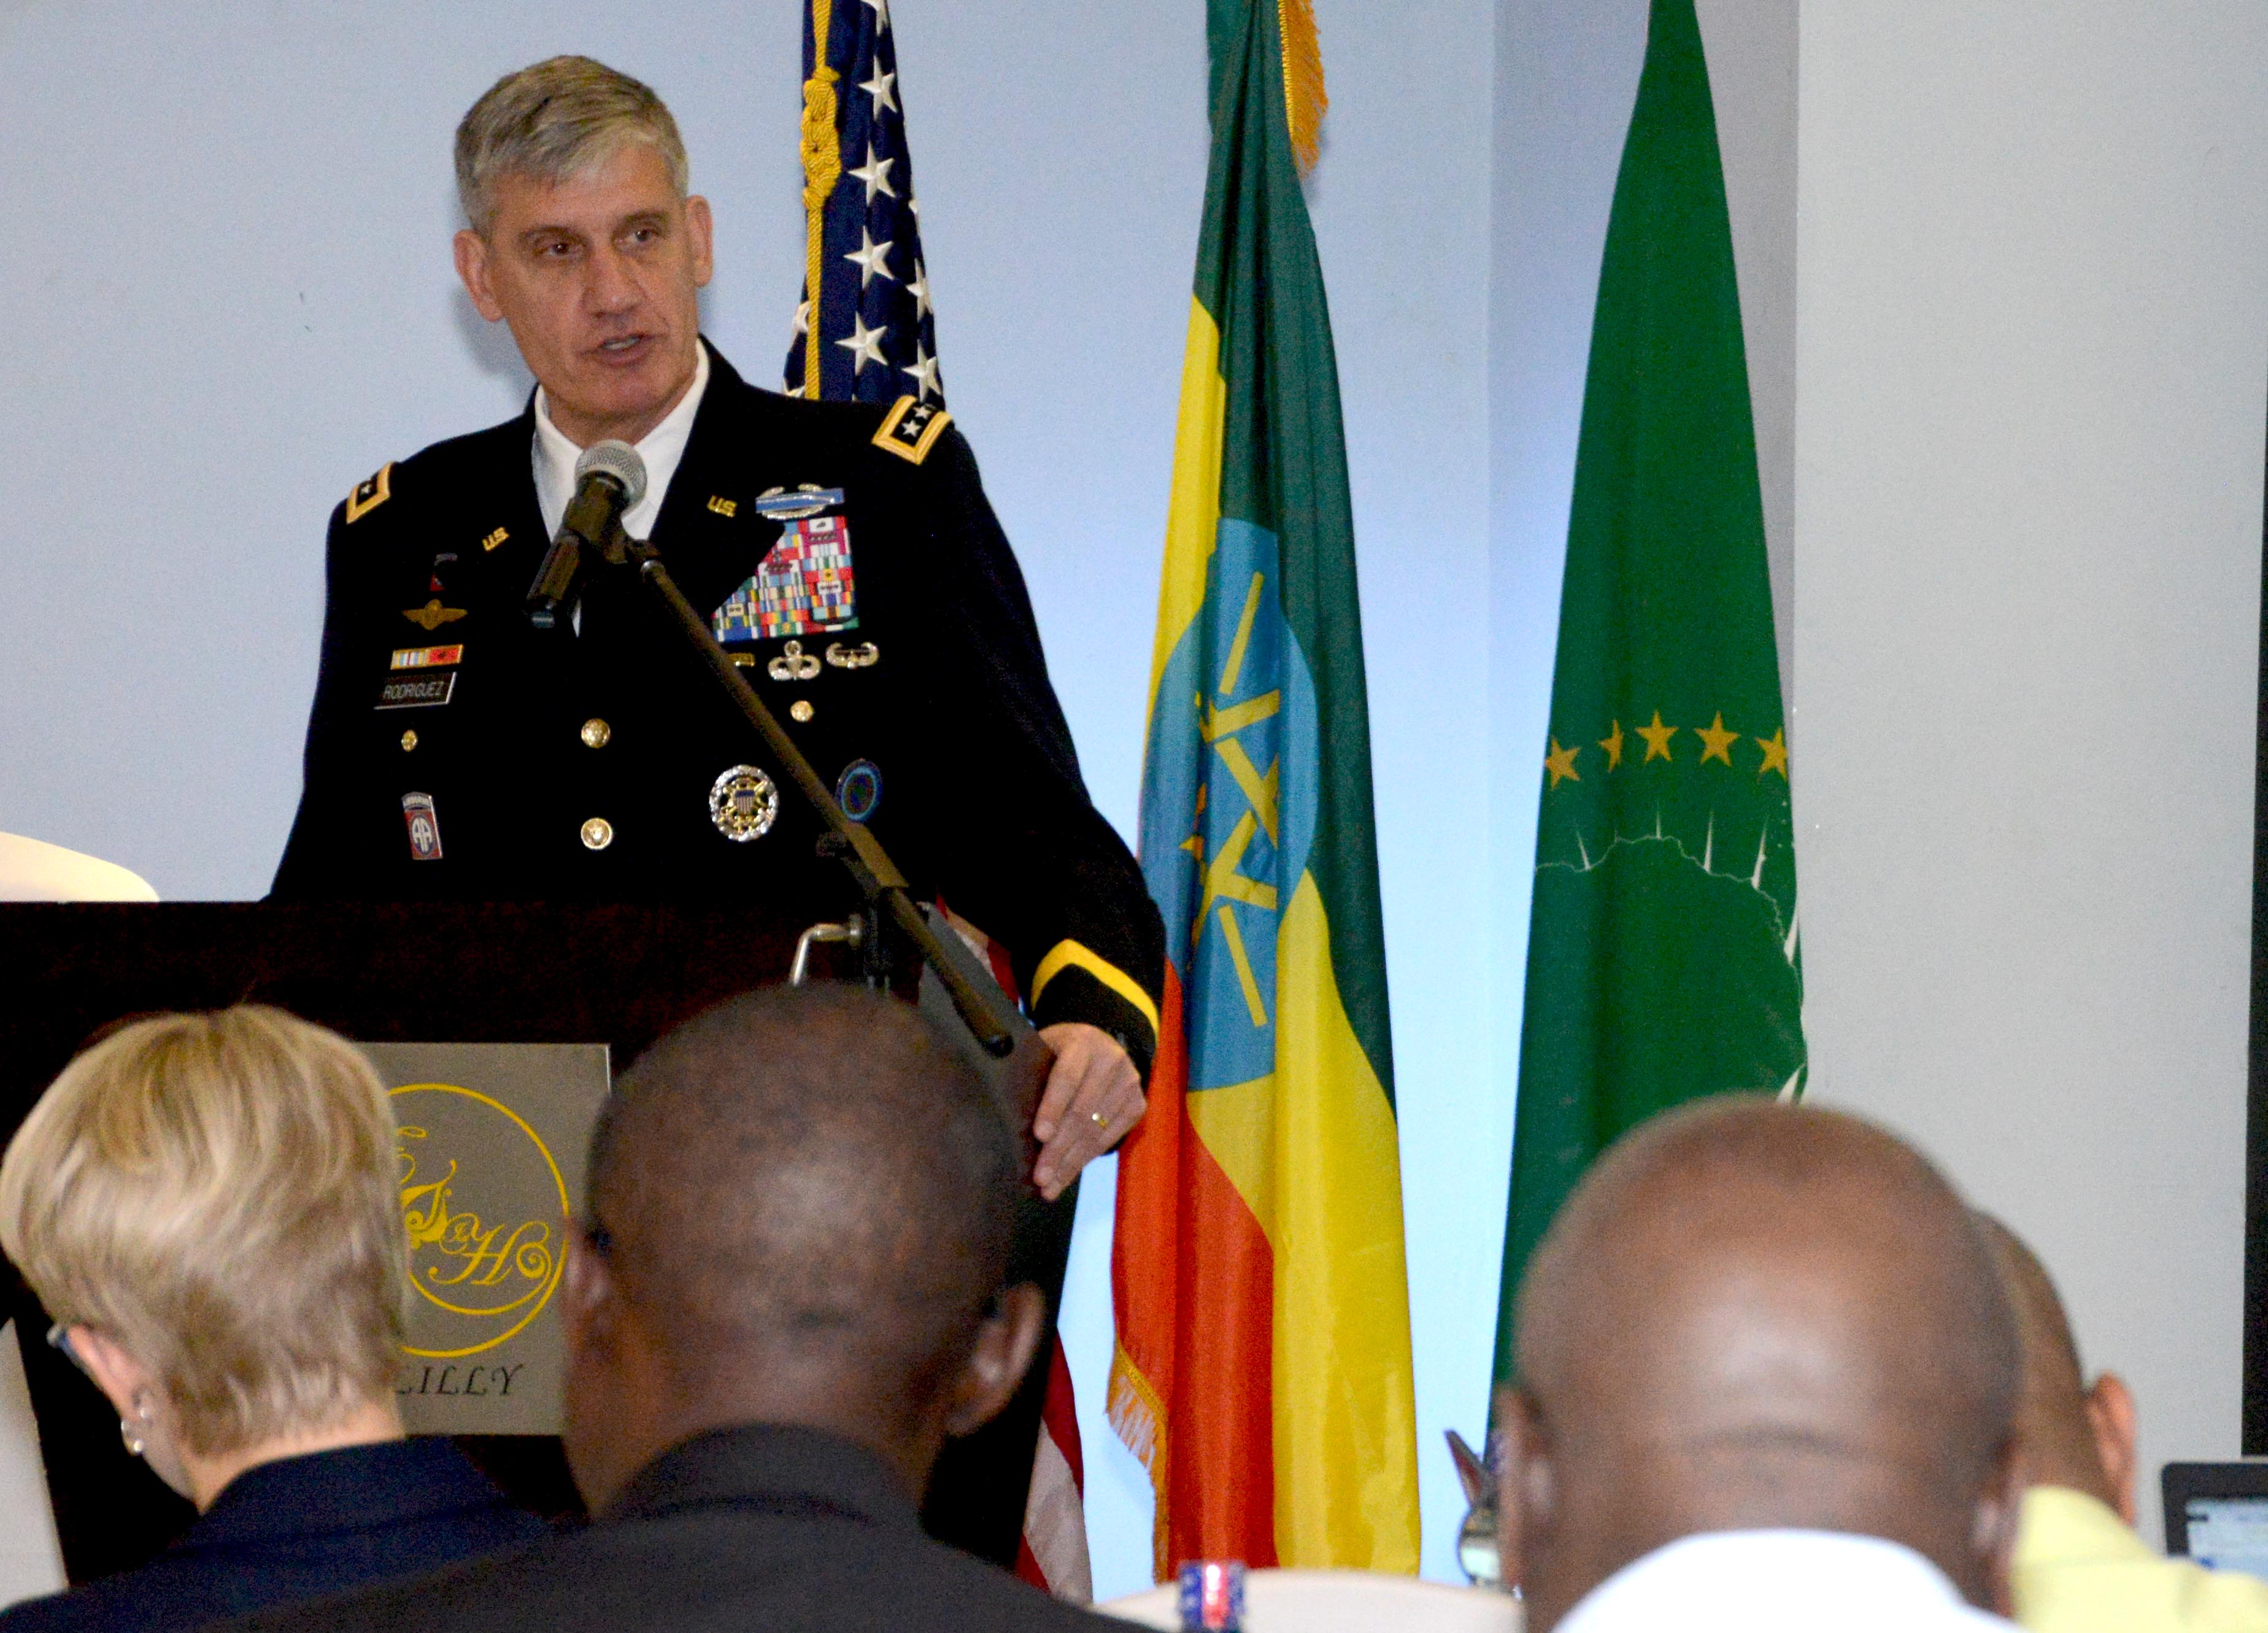 Gen. David Rodriguez, commander of U.S. Africa Command, delivers the keynote address during the Africa Logistics Forum in Addis Ababa, Ethiopia, June 23, 2015. Logisticians from 36 African nations and international partners attended the forum.